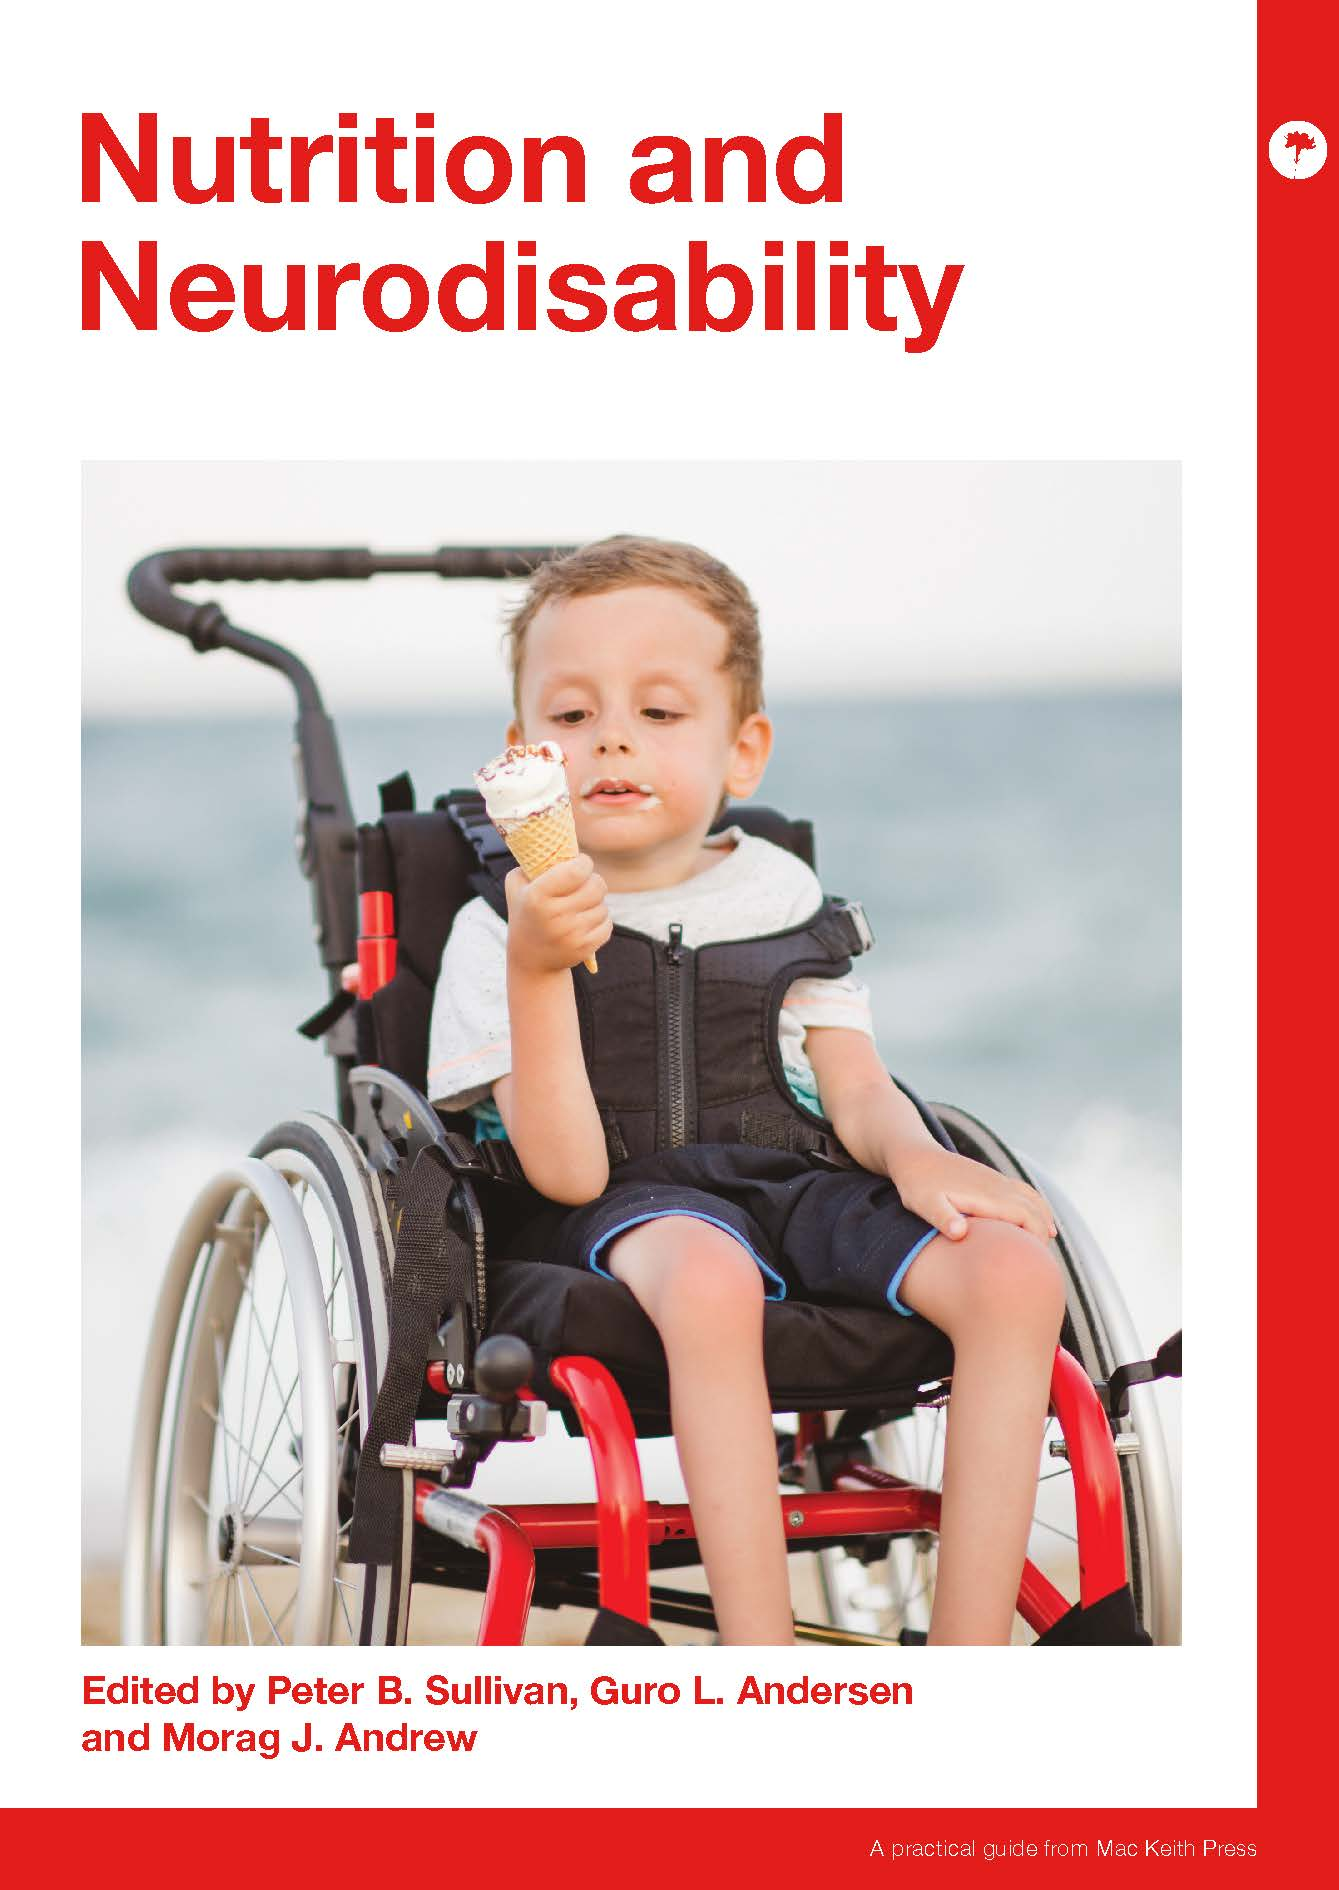 Nutrition and Neurodisability - Peter B. Sullivan, Guro L. Andersen and Morag J. Andrew